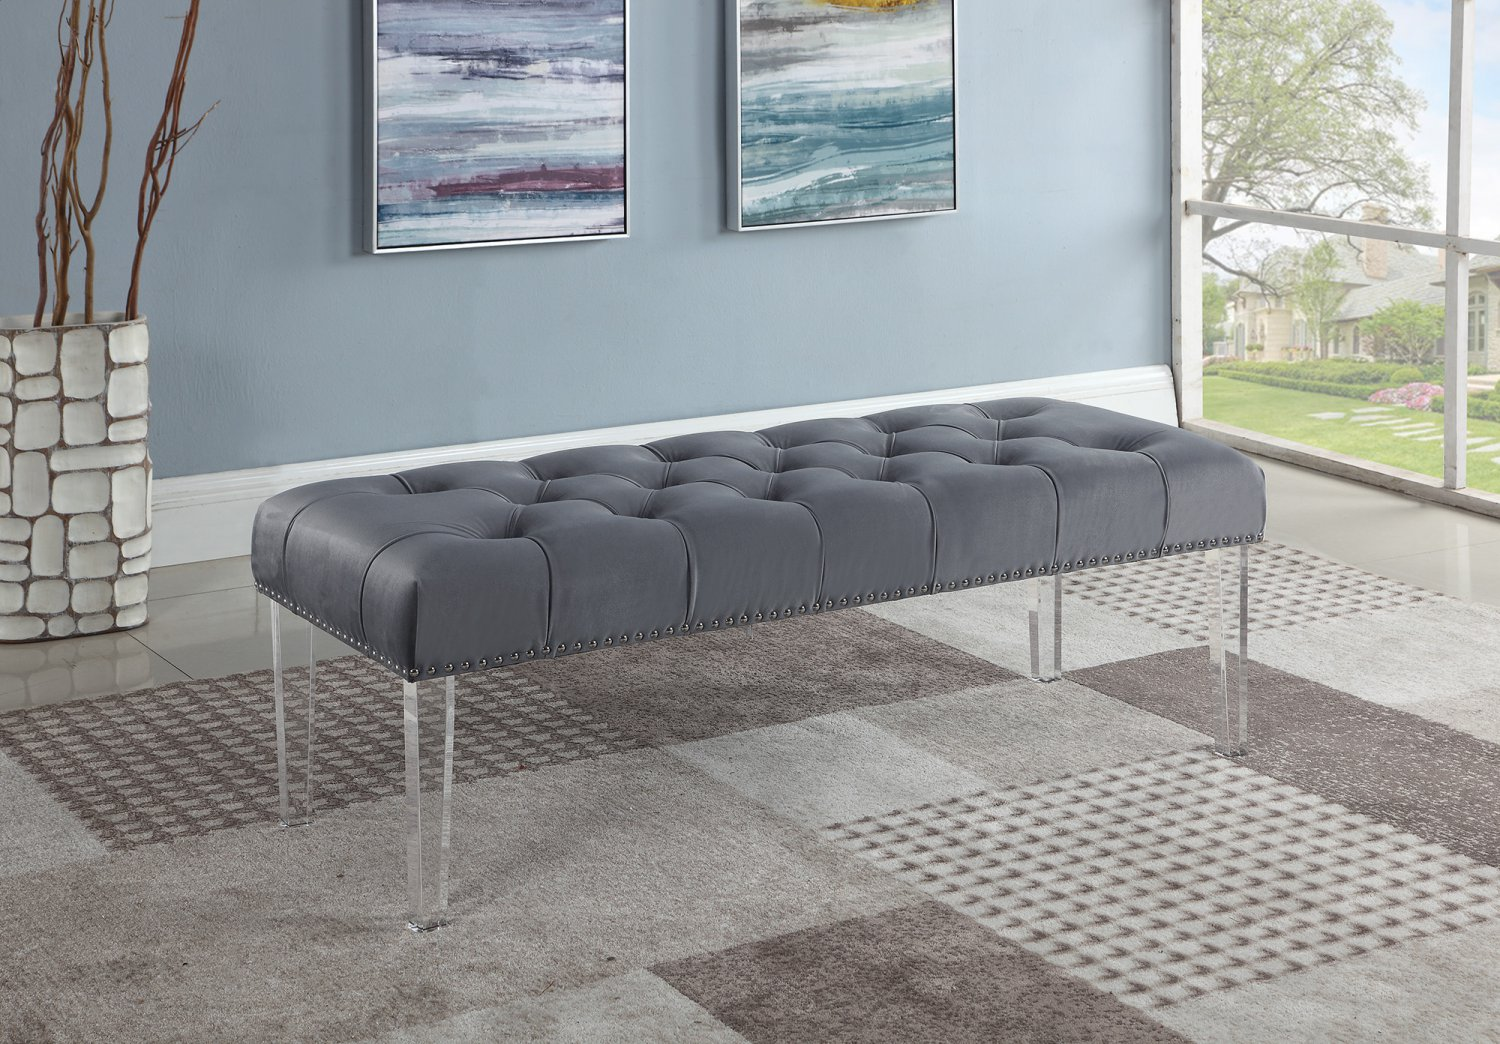 YF07, Suede Upholstered Tufted Bench with Acrylic Legs (Grey)